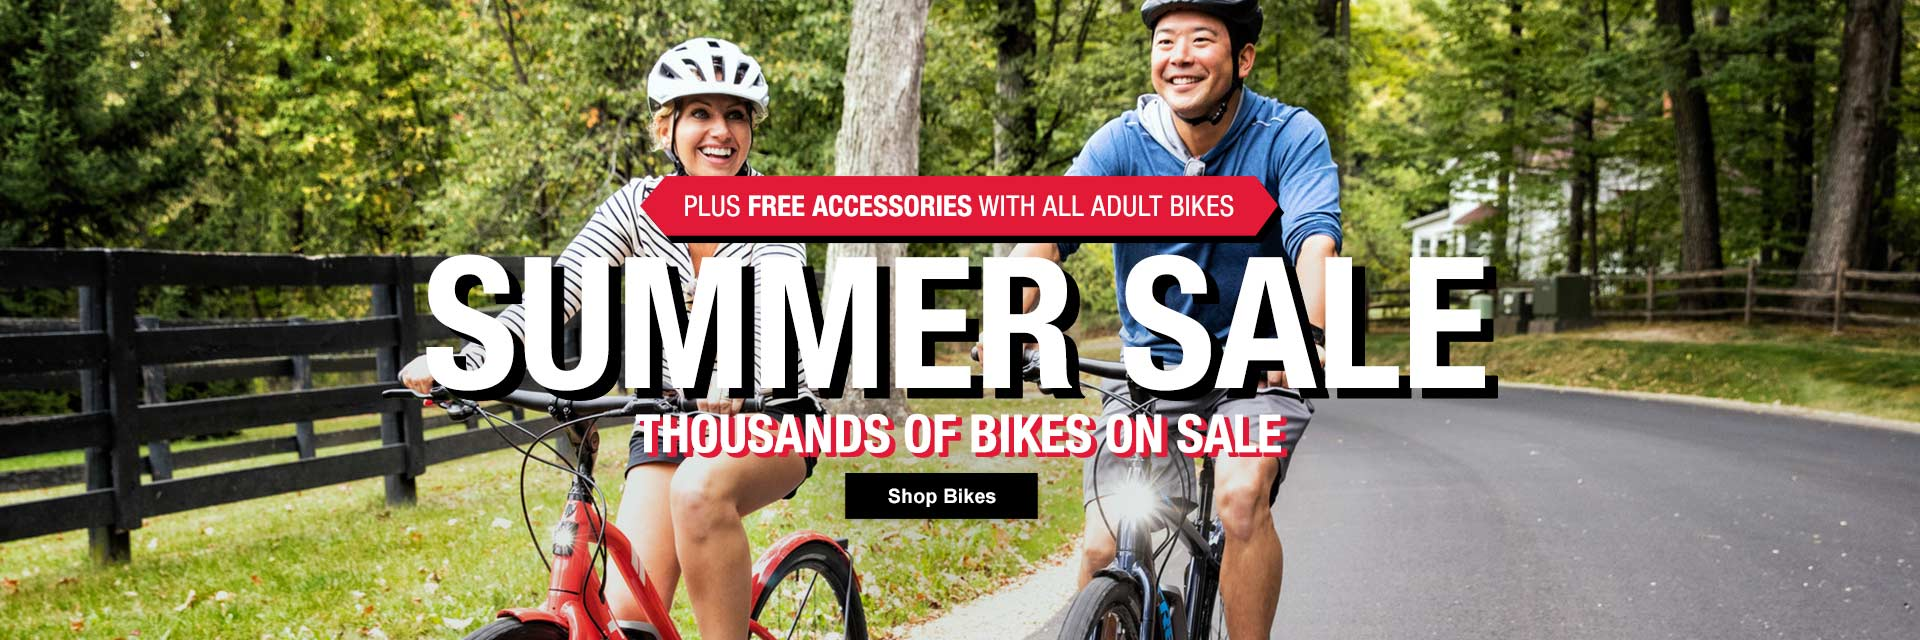 Village Cycles Summer Sale